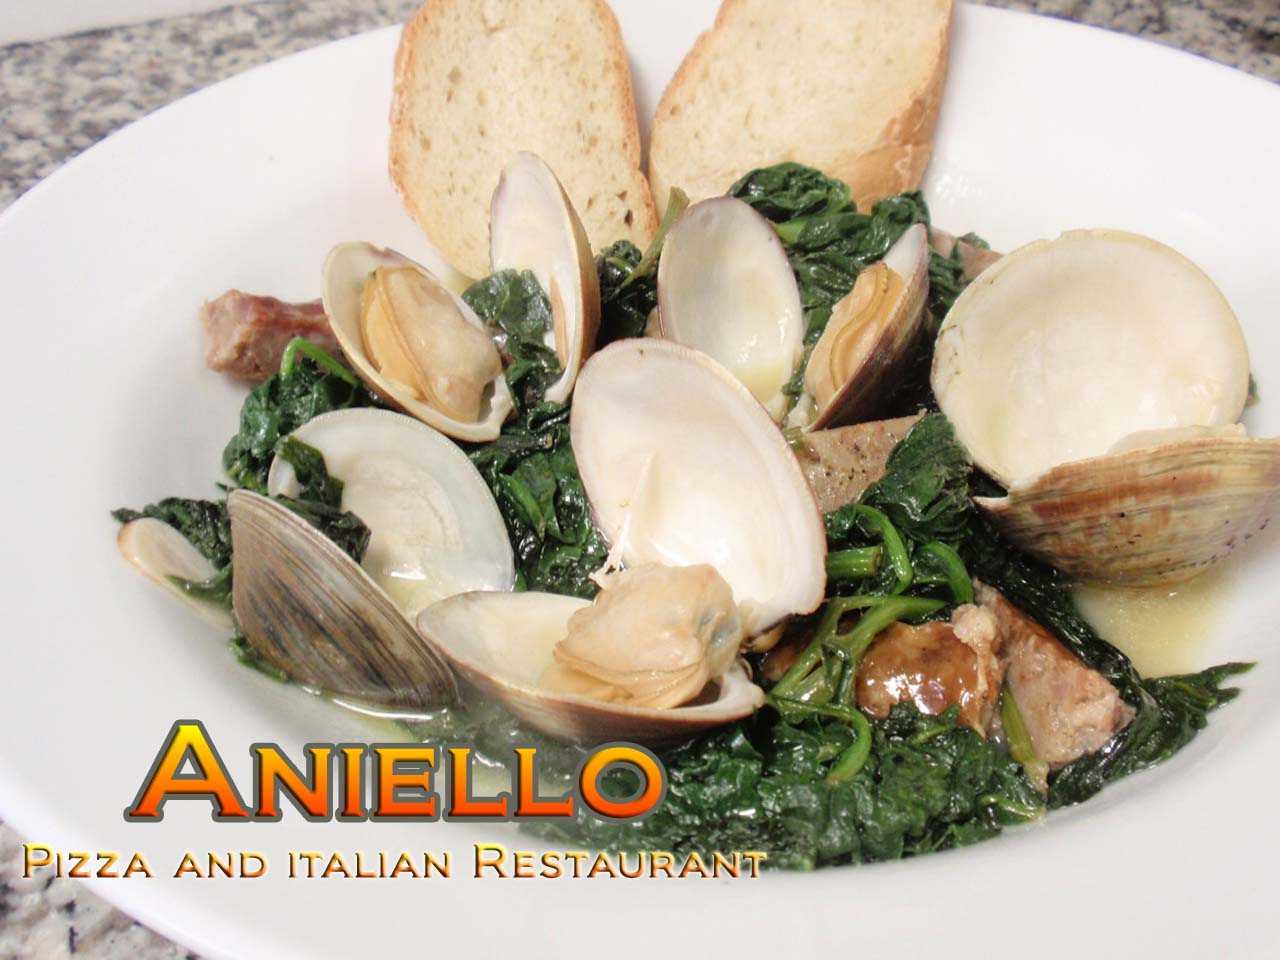 Aniello's Pizza and Italian Rest